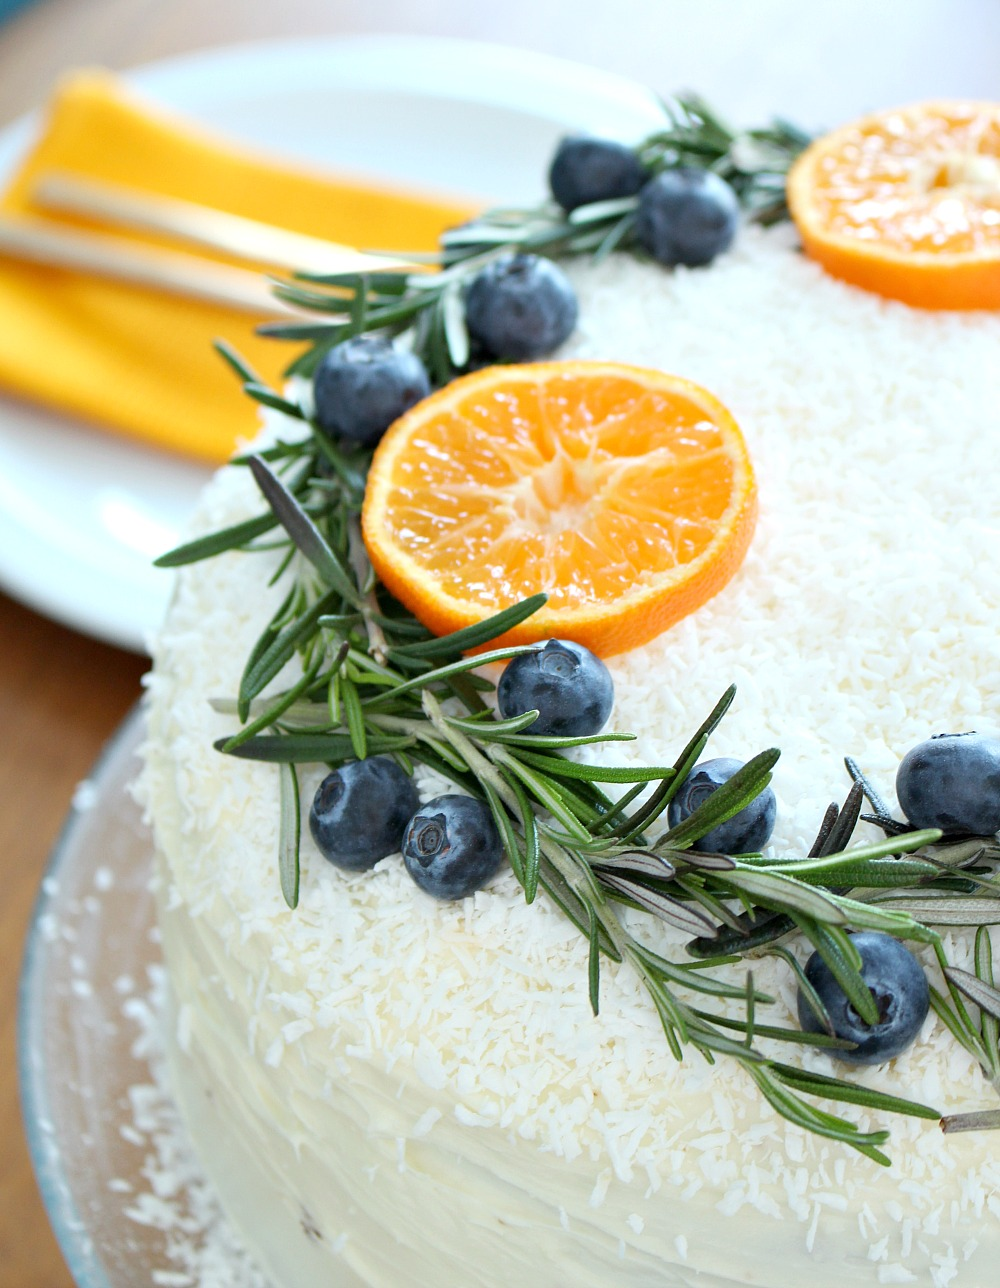 Carrot Cake with Natural Wreath Cake Decoration | Festive ...